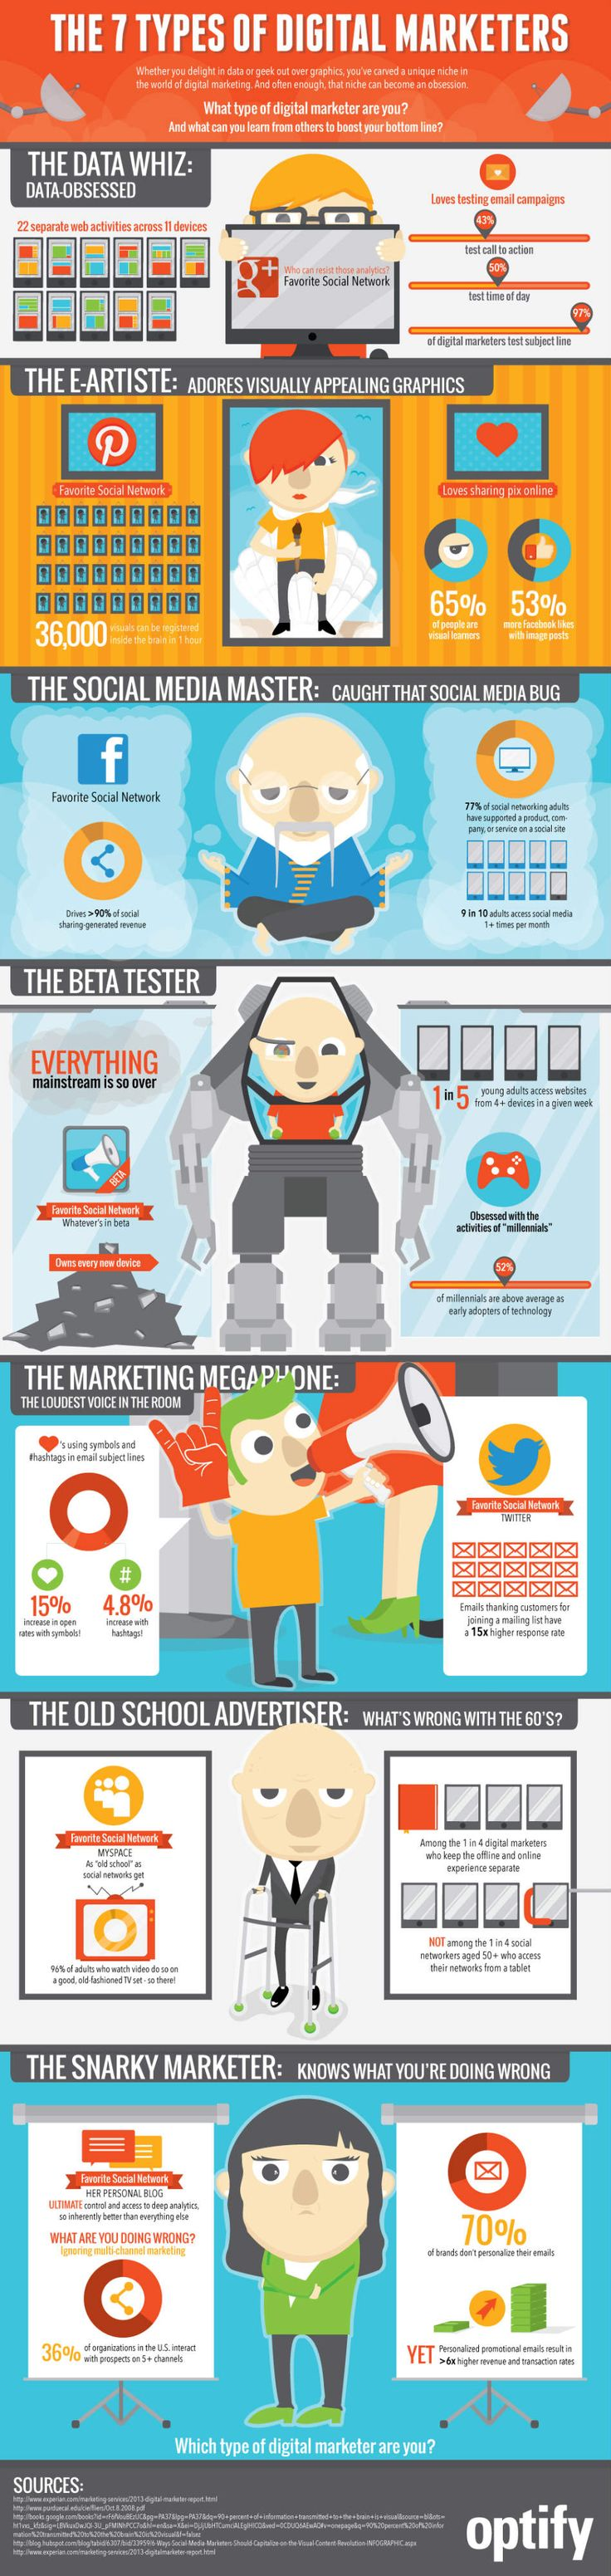 7 Types of Digital Marketers